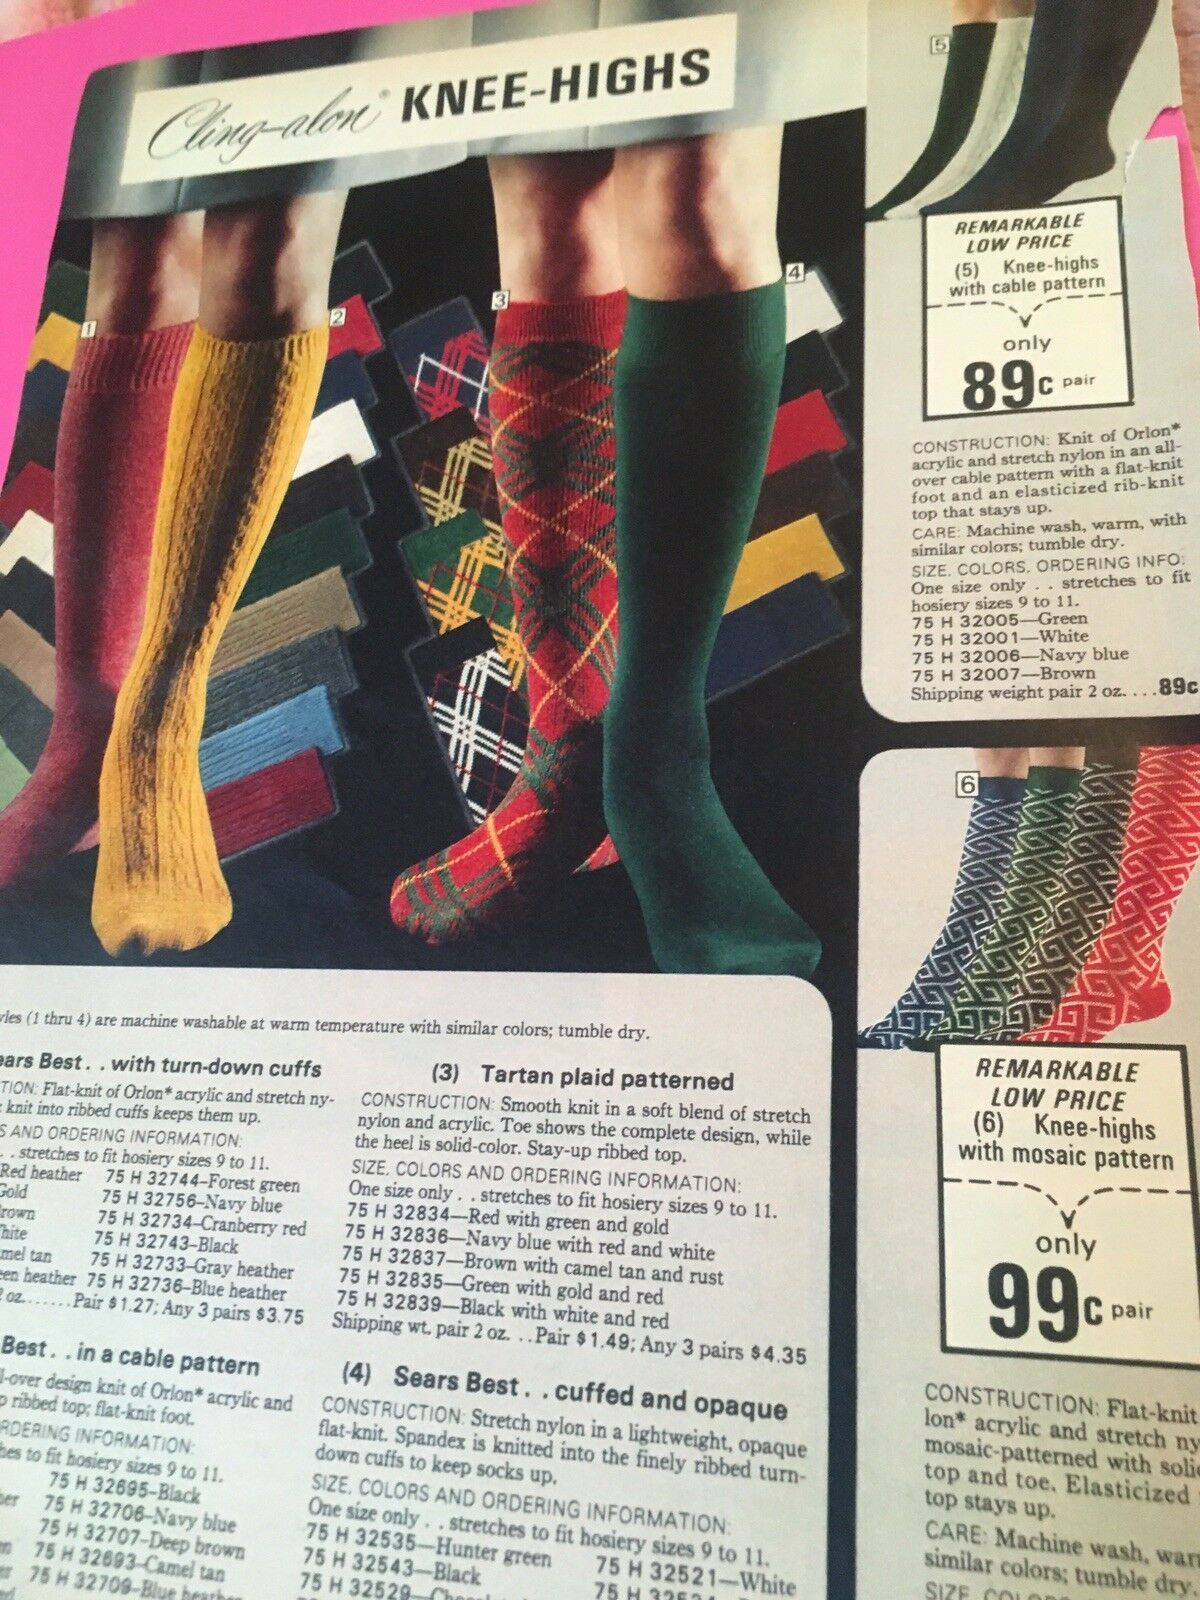 a49763801 Lot Vintage Catalog Clippings Women Girls Bodysuits Knee Highs Leotards  Sears